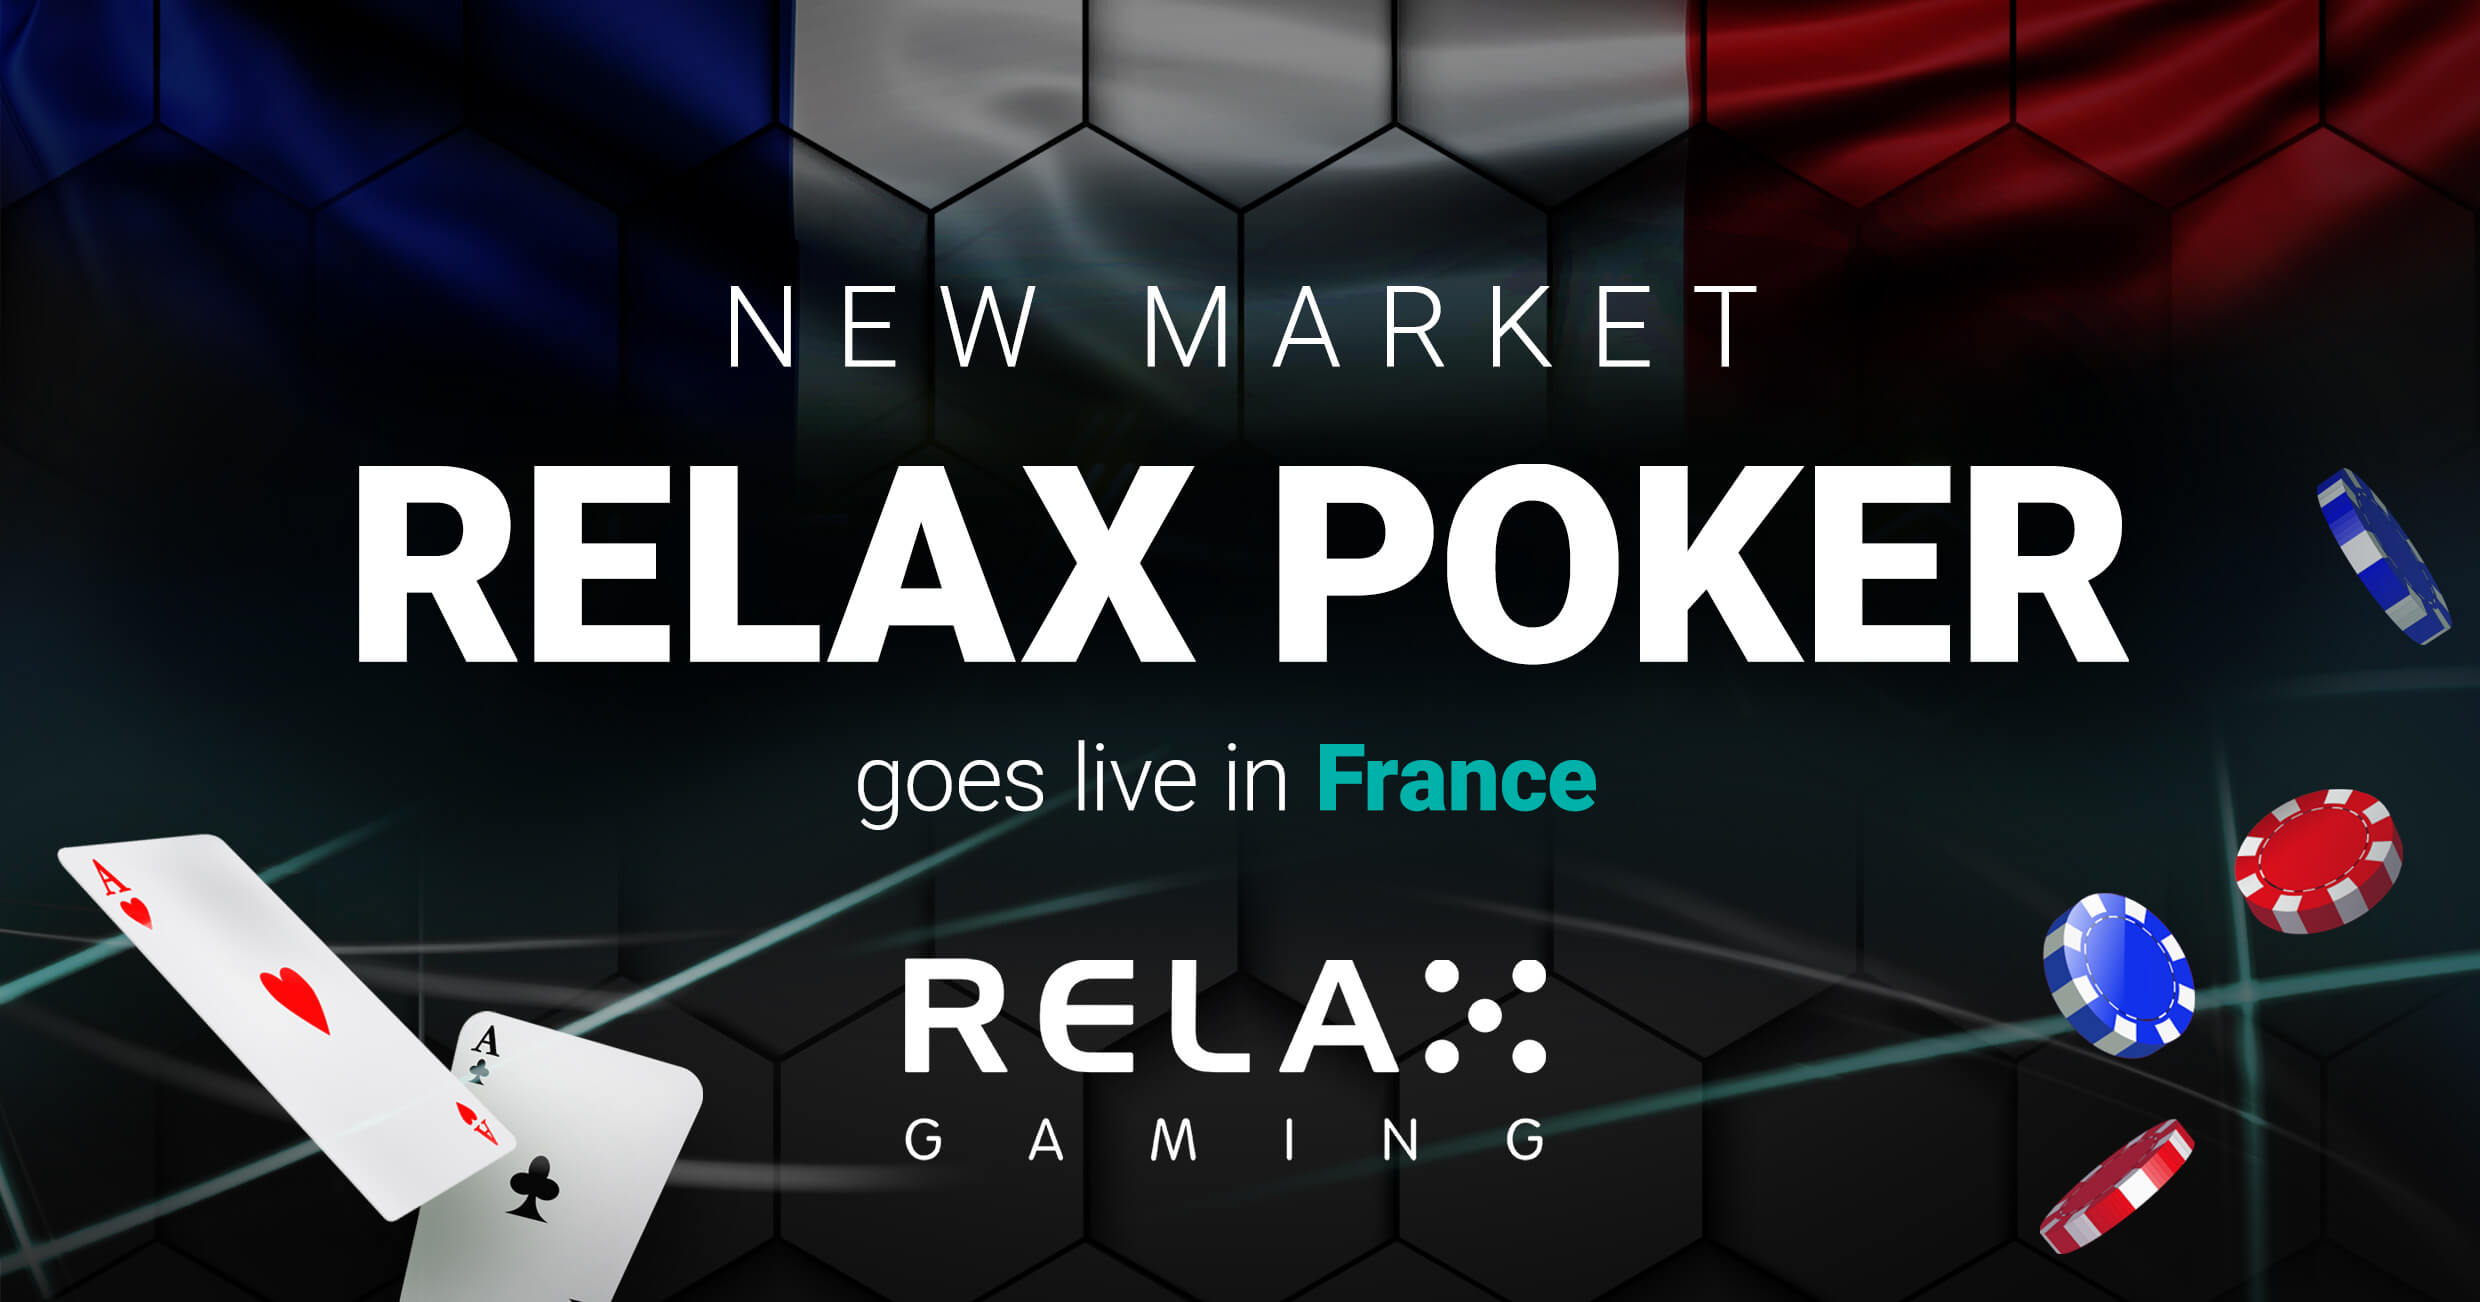 Relax Gaming celebrates 5 years of Poker Success with French market entry